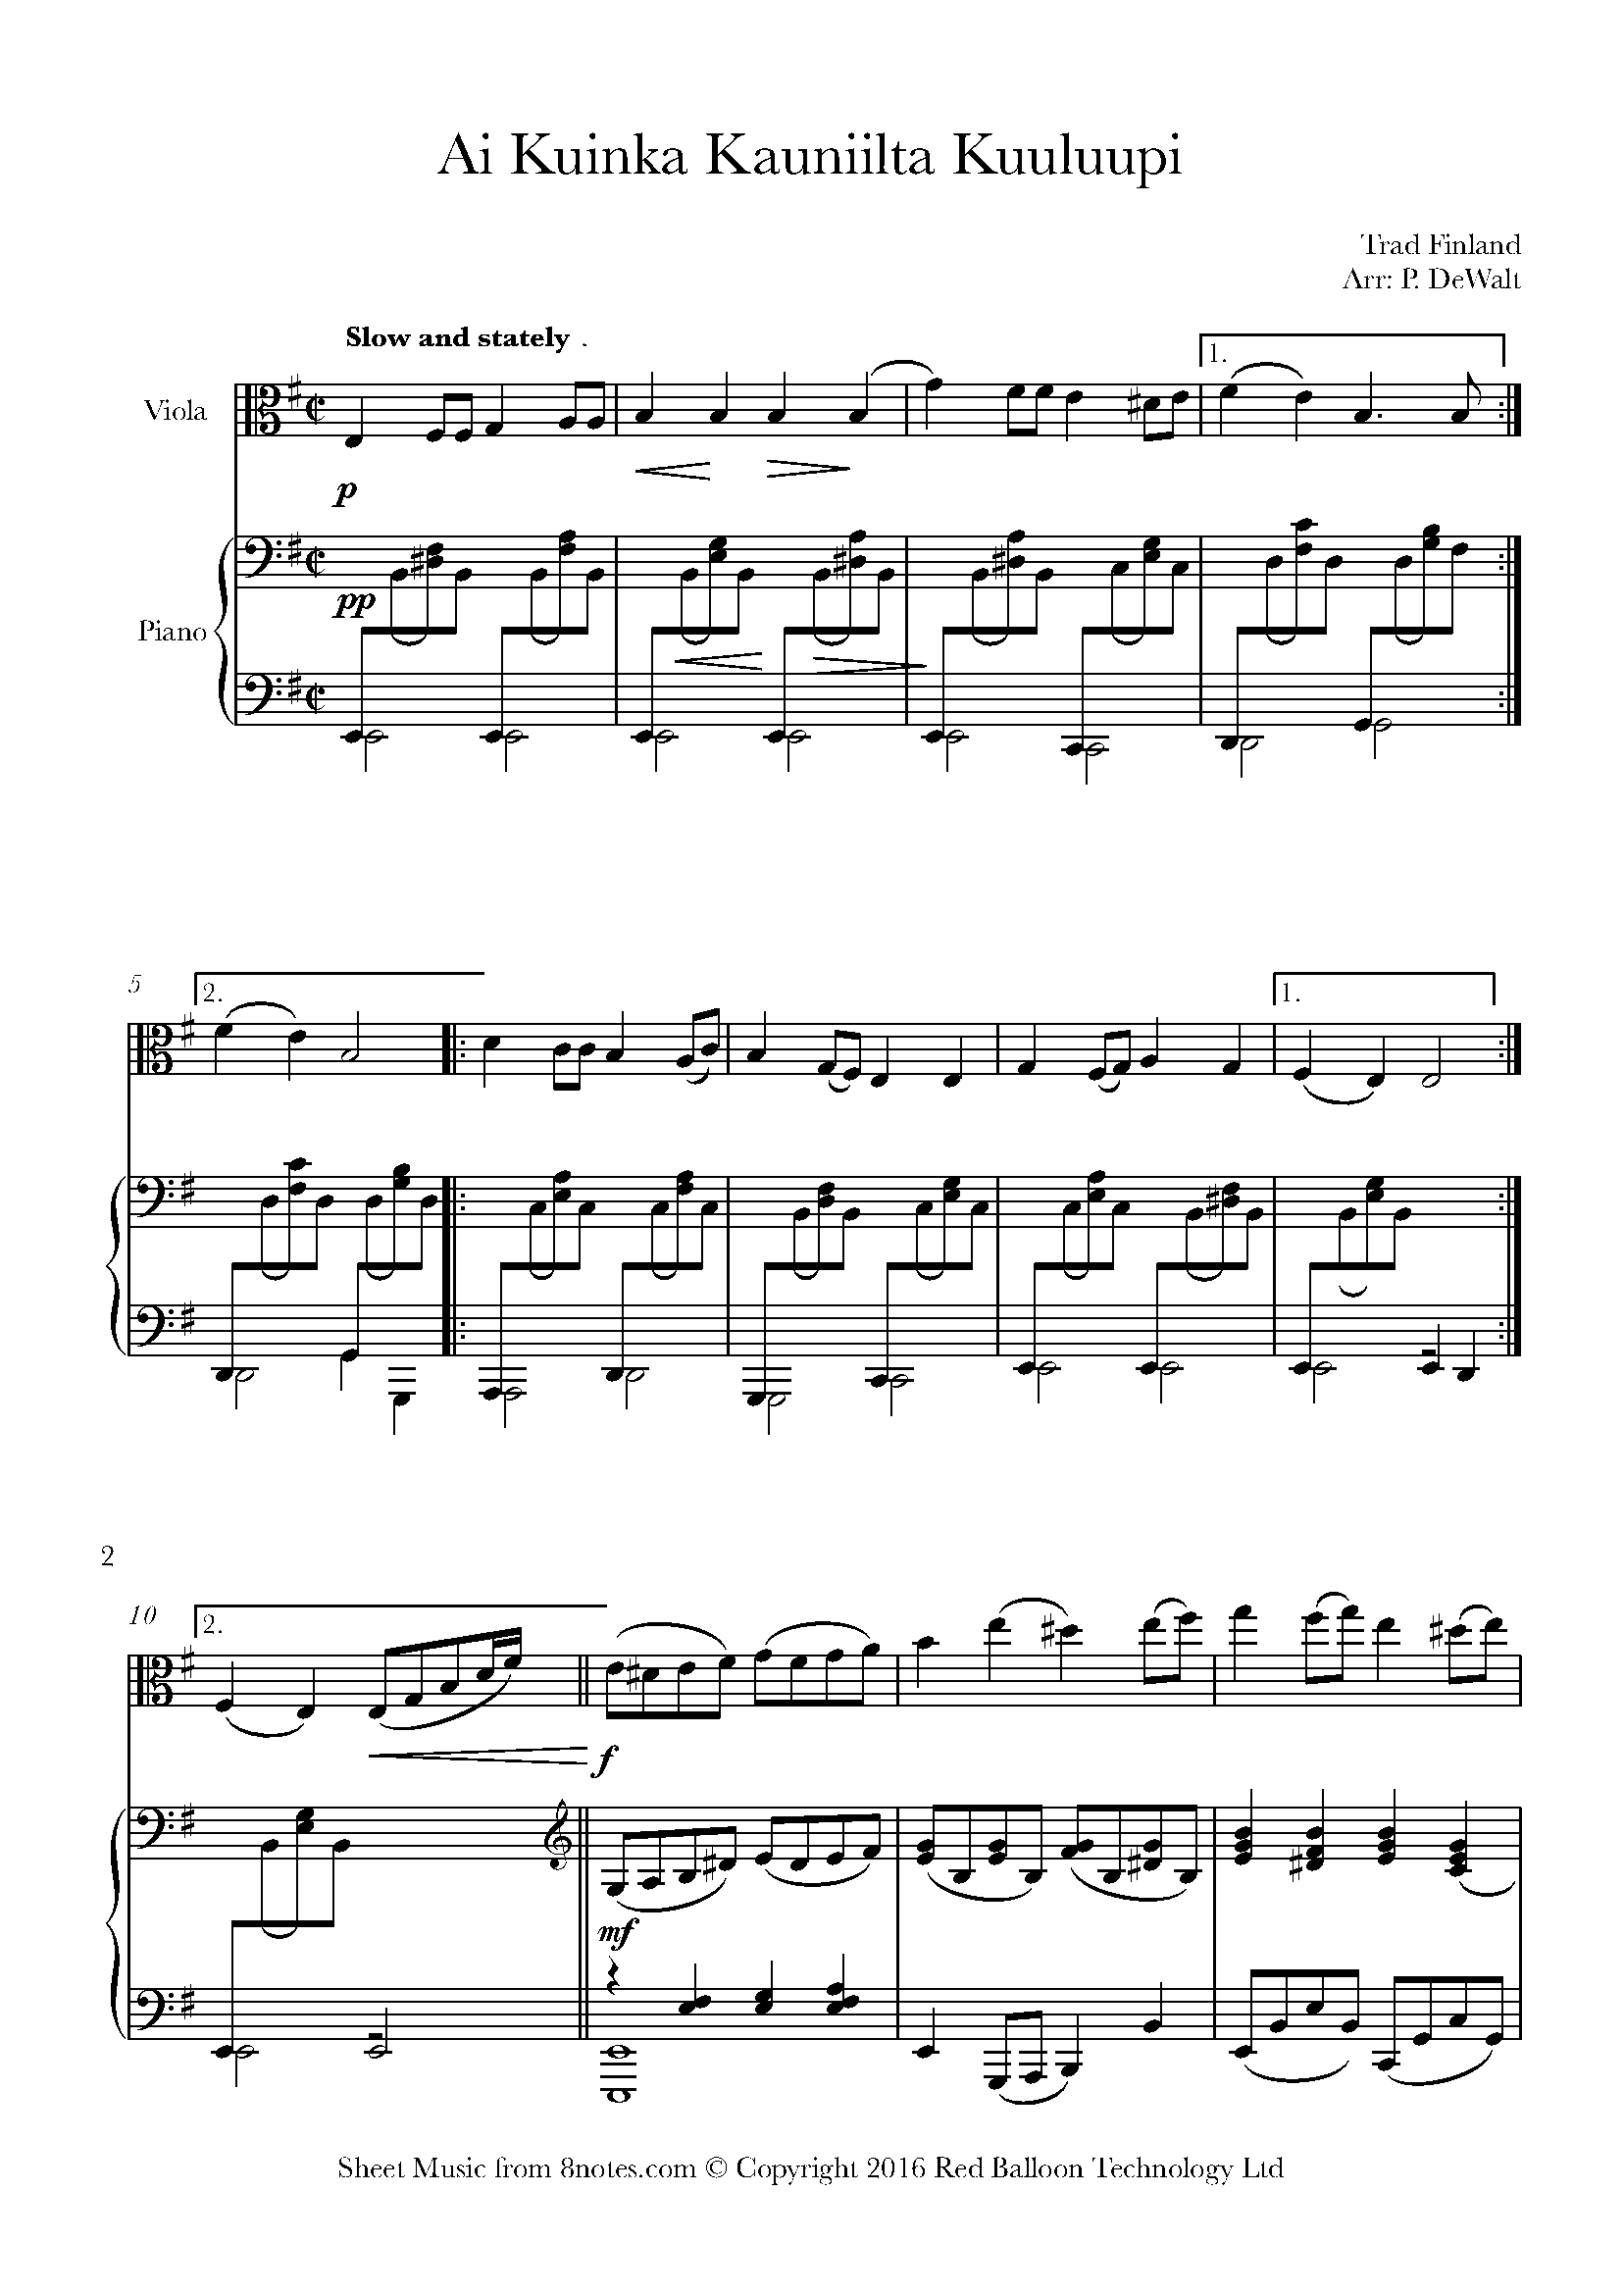 Free Viola Sheet Music Lessons Resources 8notes Com Violinsheetmusic.org is an online archive of printable violin music in pdf format. free viola sheet music lessons